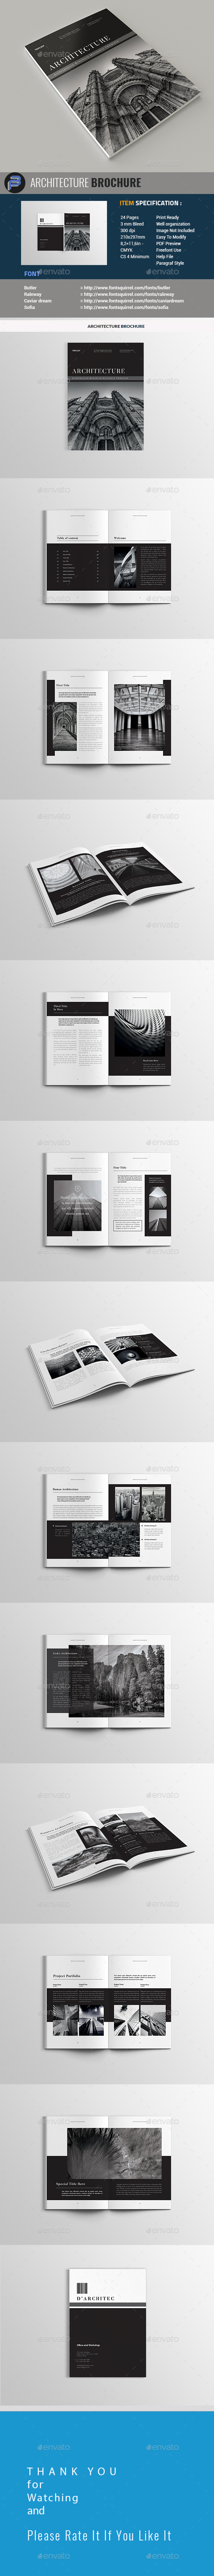 Black Architecture - Portfolio Brochures